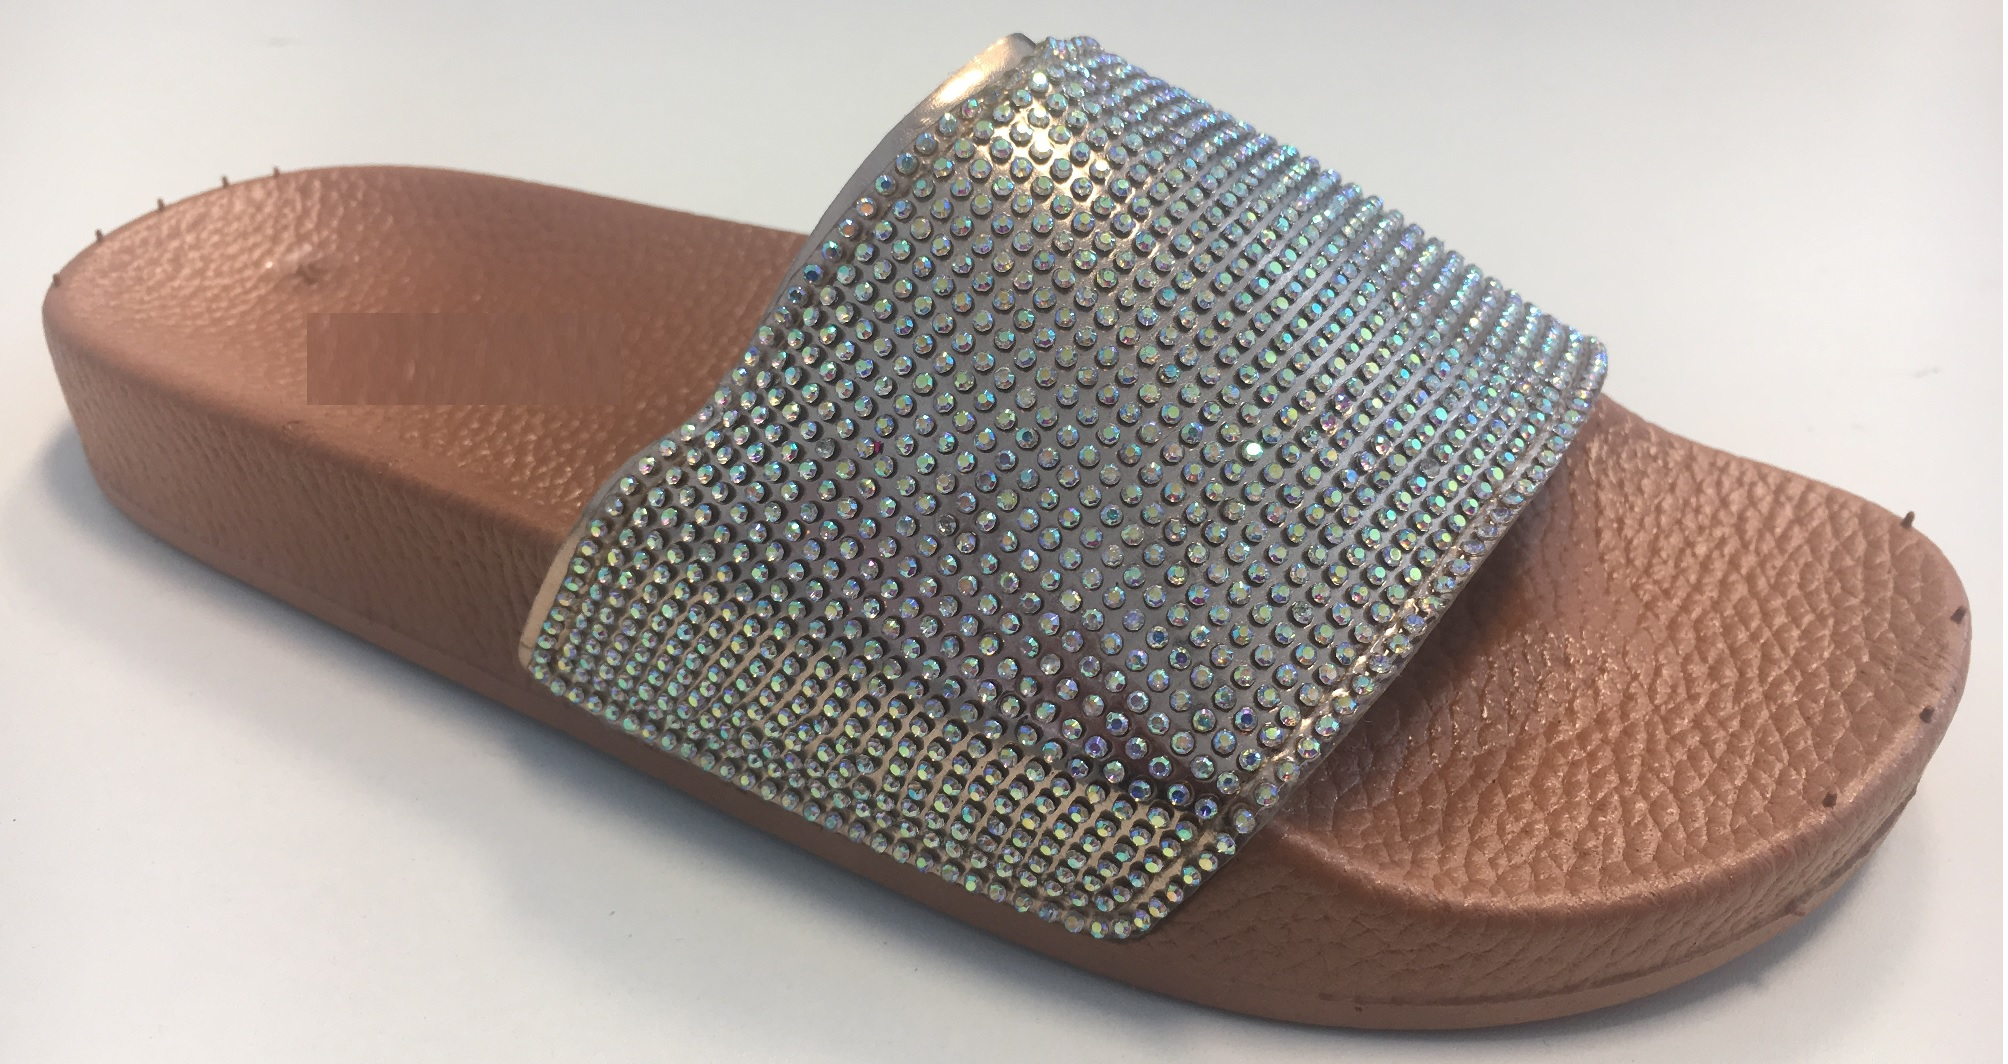 LADIES-WOMENS-SLIP-ON-DIAMANTE-BLING-SLIDERS-SLIPPER-SPARKLY-SANDALS-SHOES-SIZE thumbnail 7